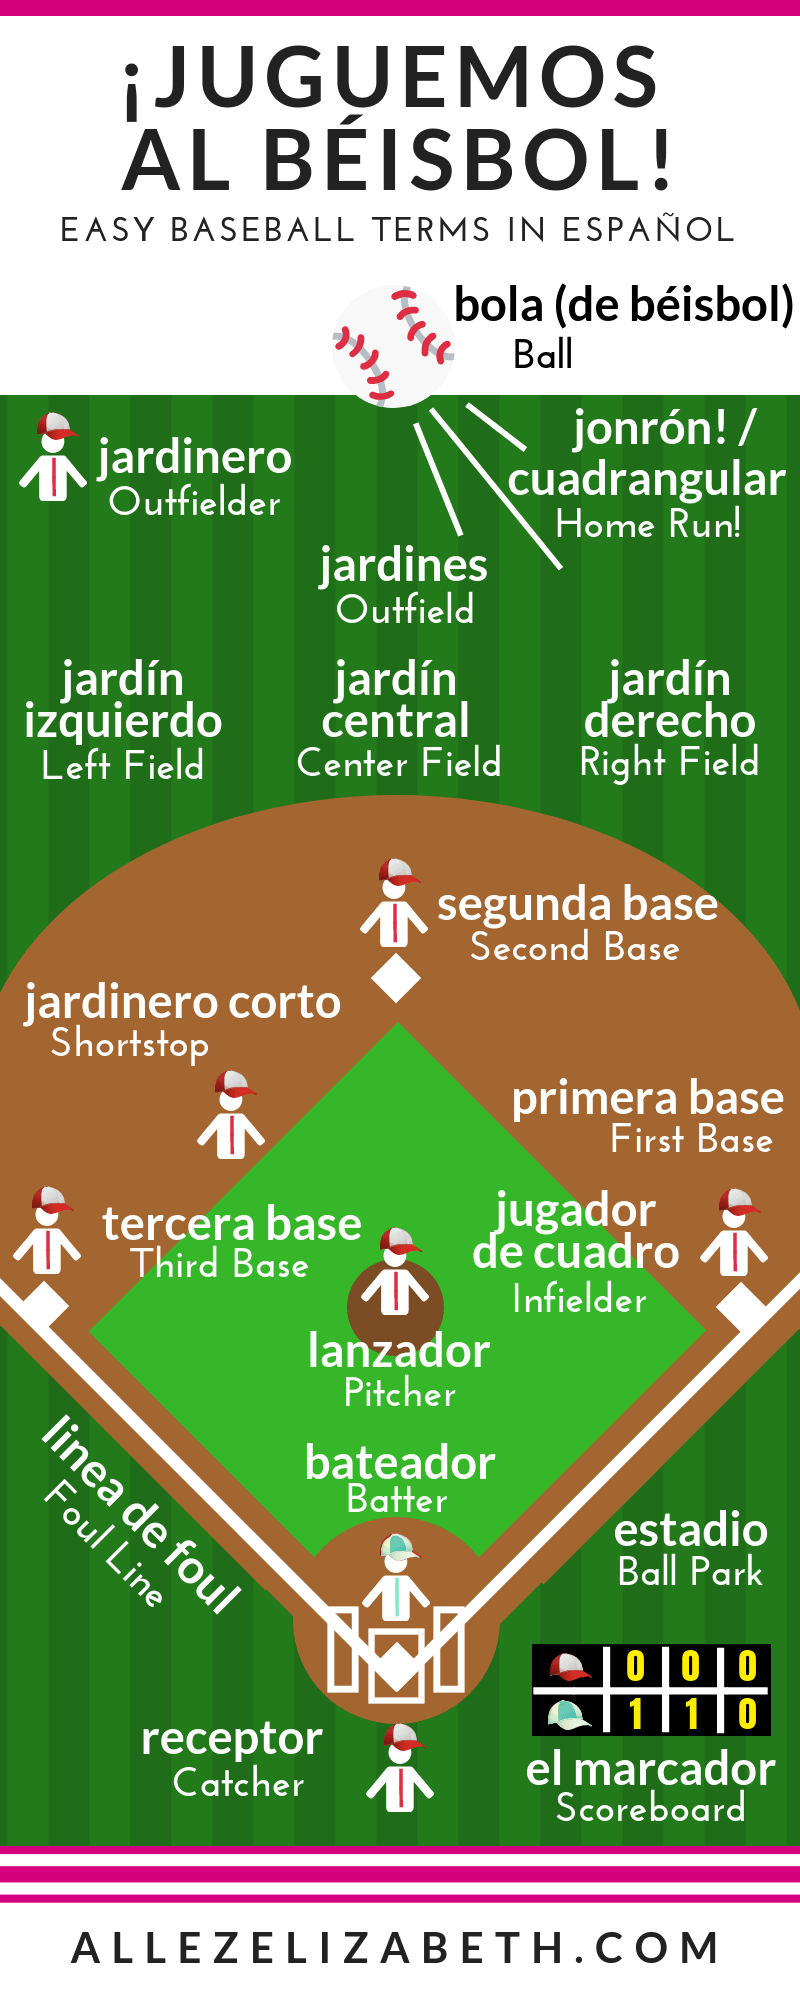 ALLEZ ELIZABETH - PINTEREST- BASEBALL TERMS IN SPANISH (ESPAÑOL)